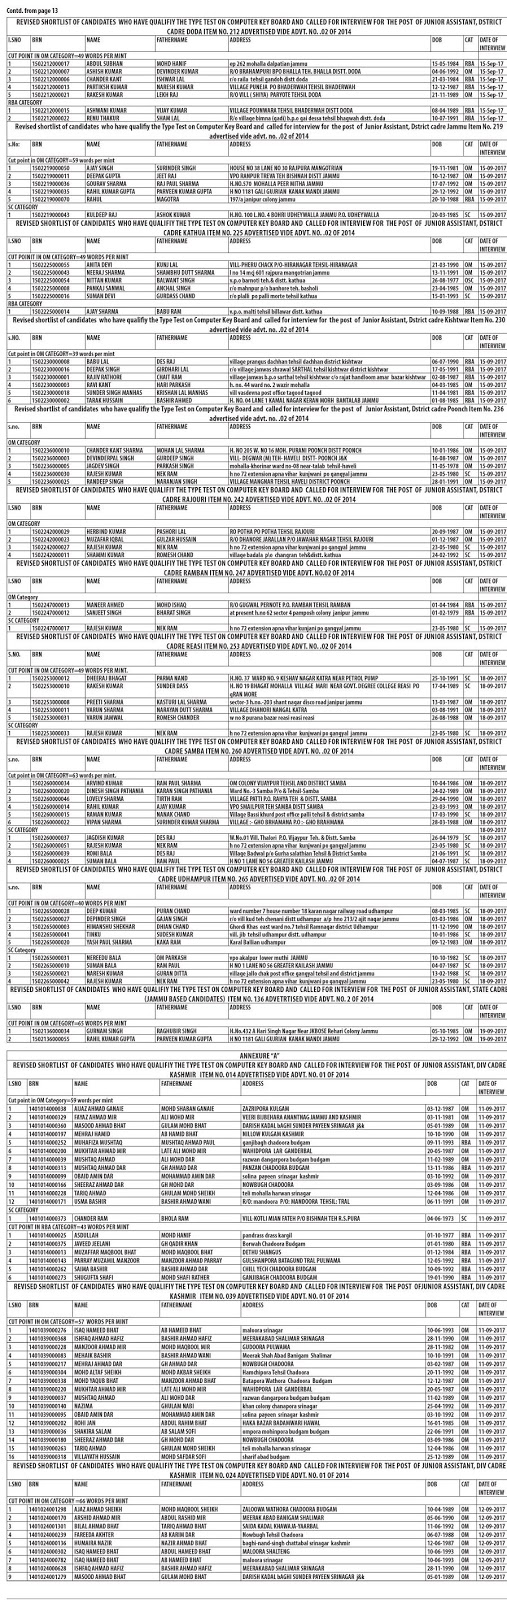 JKSSB Revised Shortlist for Junior Assistant Post (Sate Cadre/Divisional Cadre/District Cadre)